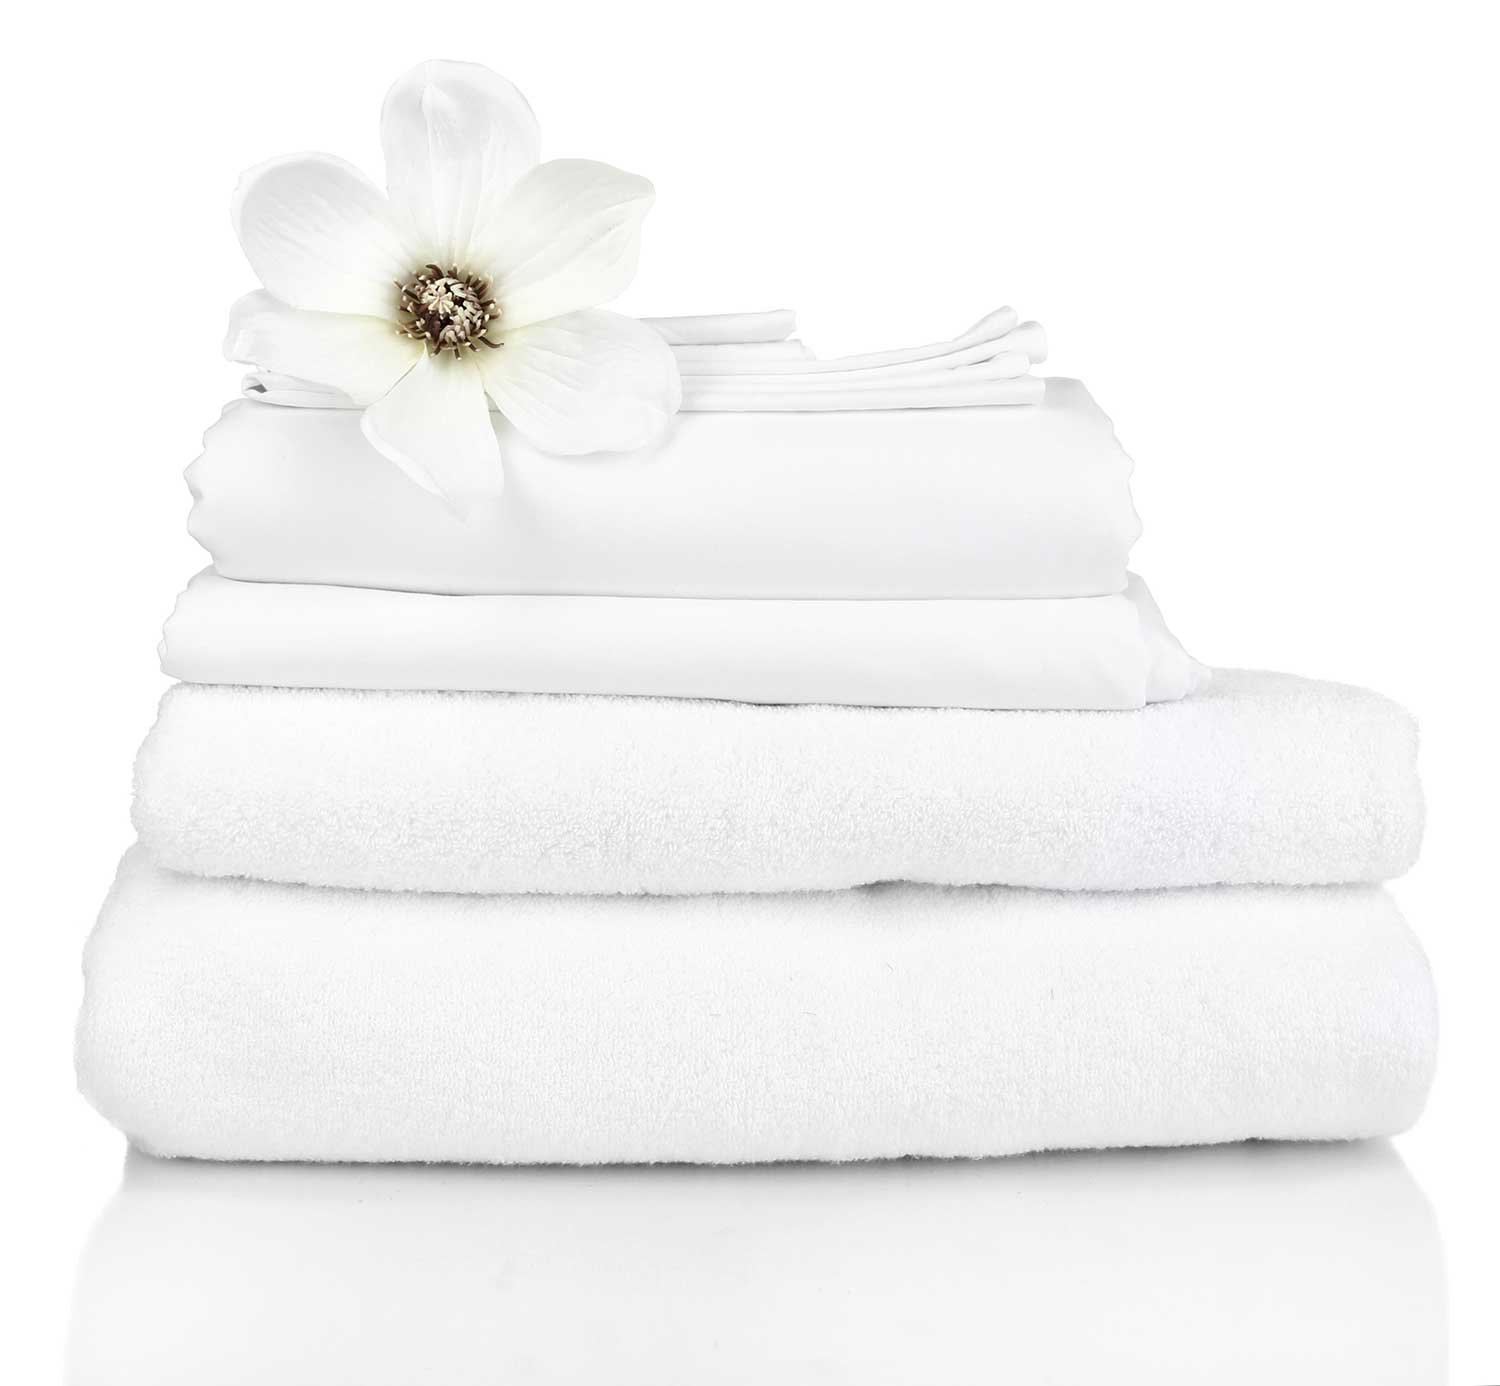 Rent the Linen Essentials Housewares Package from Furniture Options